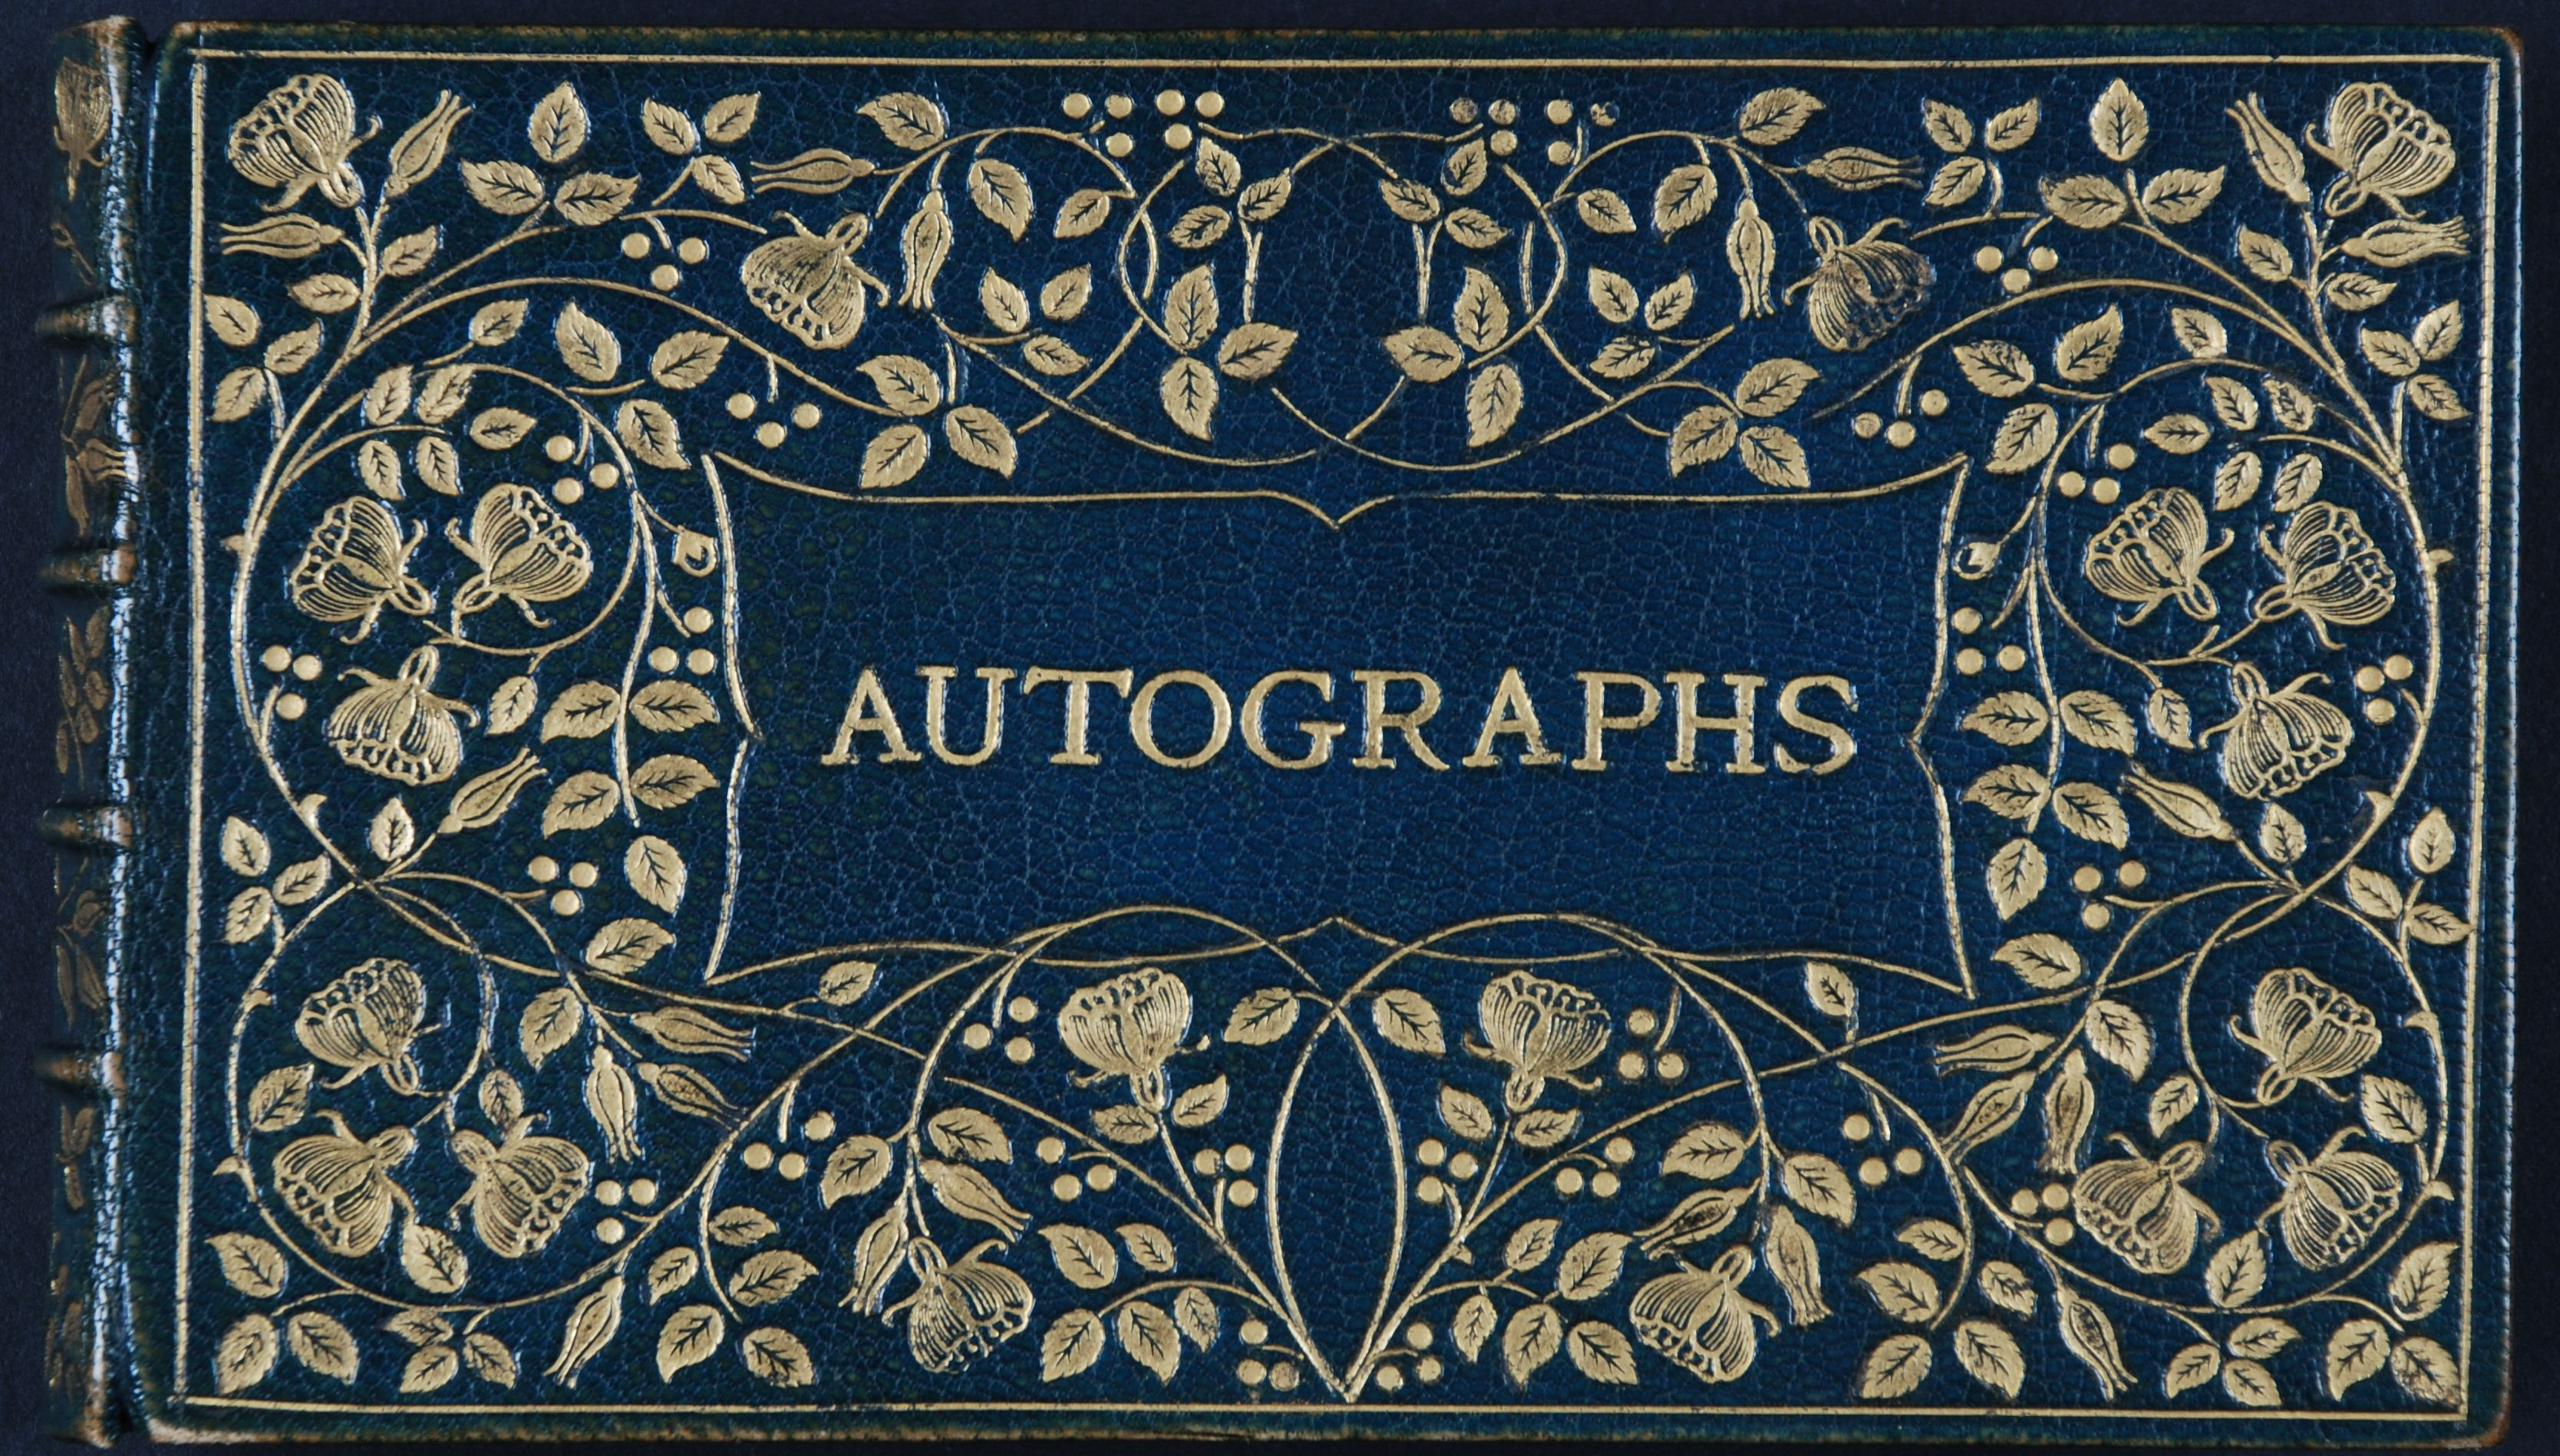 Autographs: collected by M.E. Joachim.